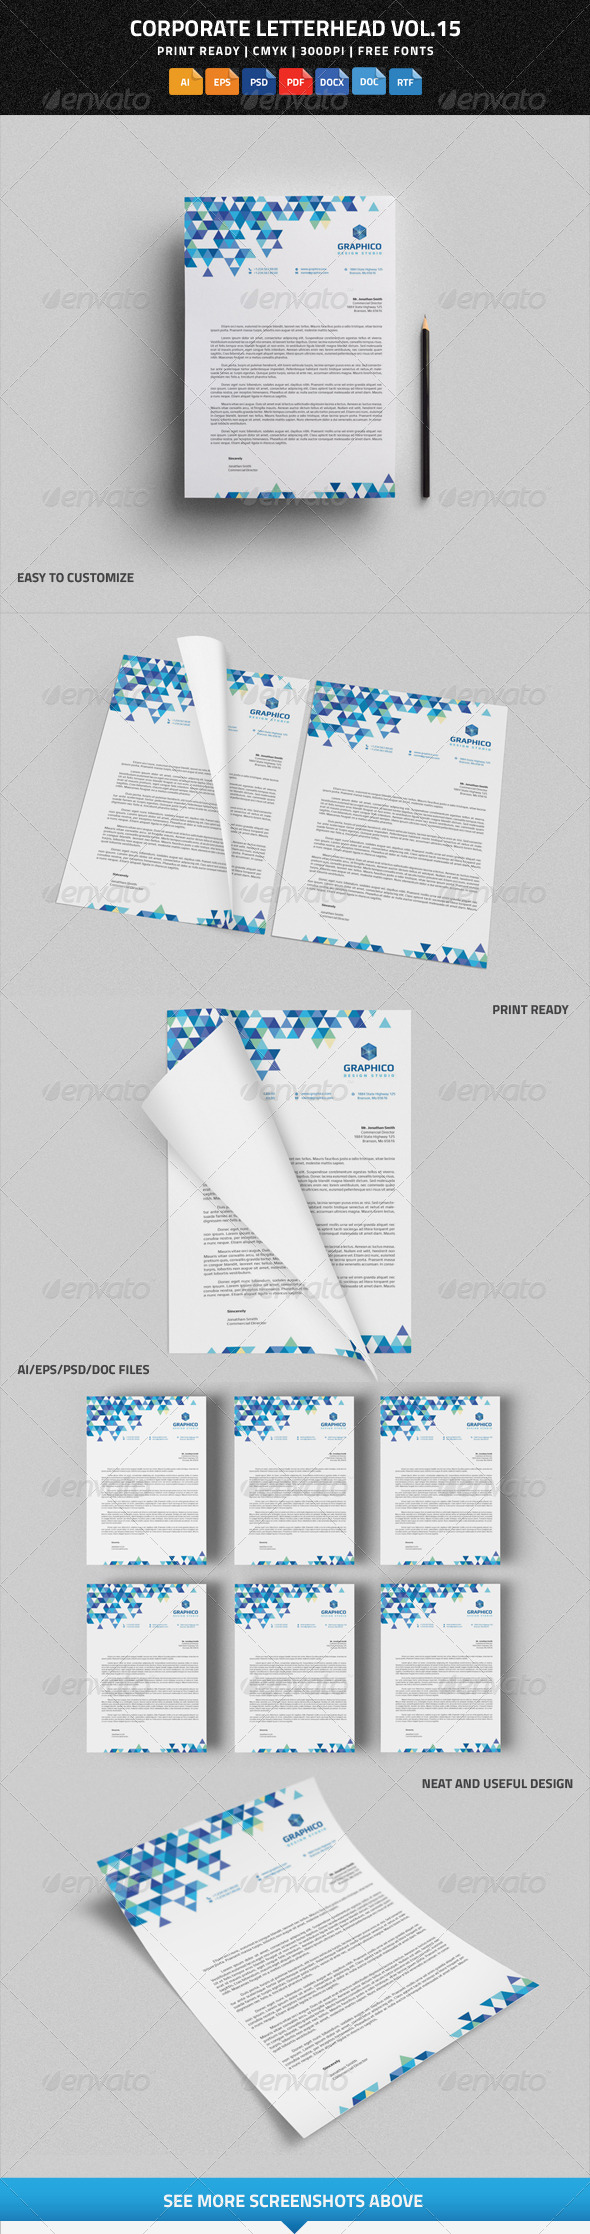 GraphicRiver Corporate Letterhead vol.15 with MS Word DOC DOCX 8173484